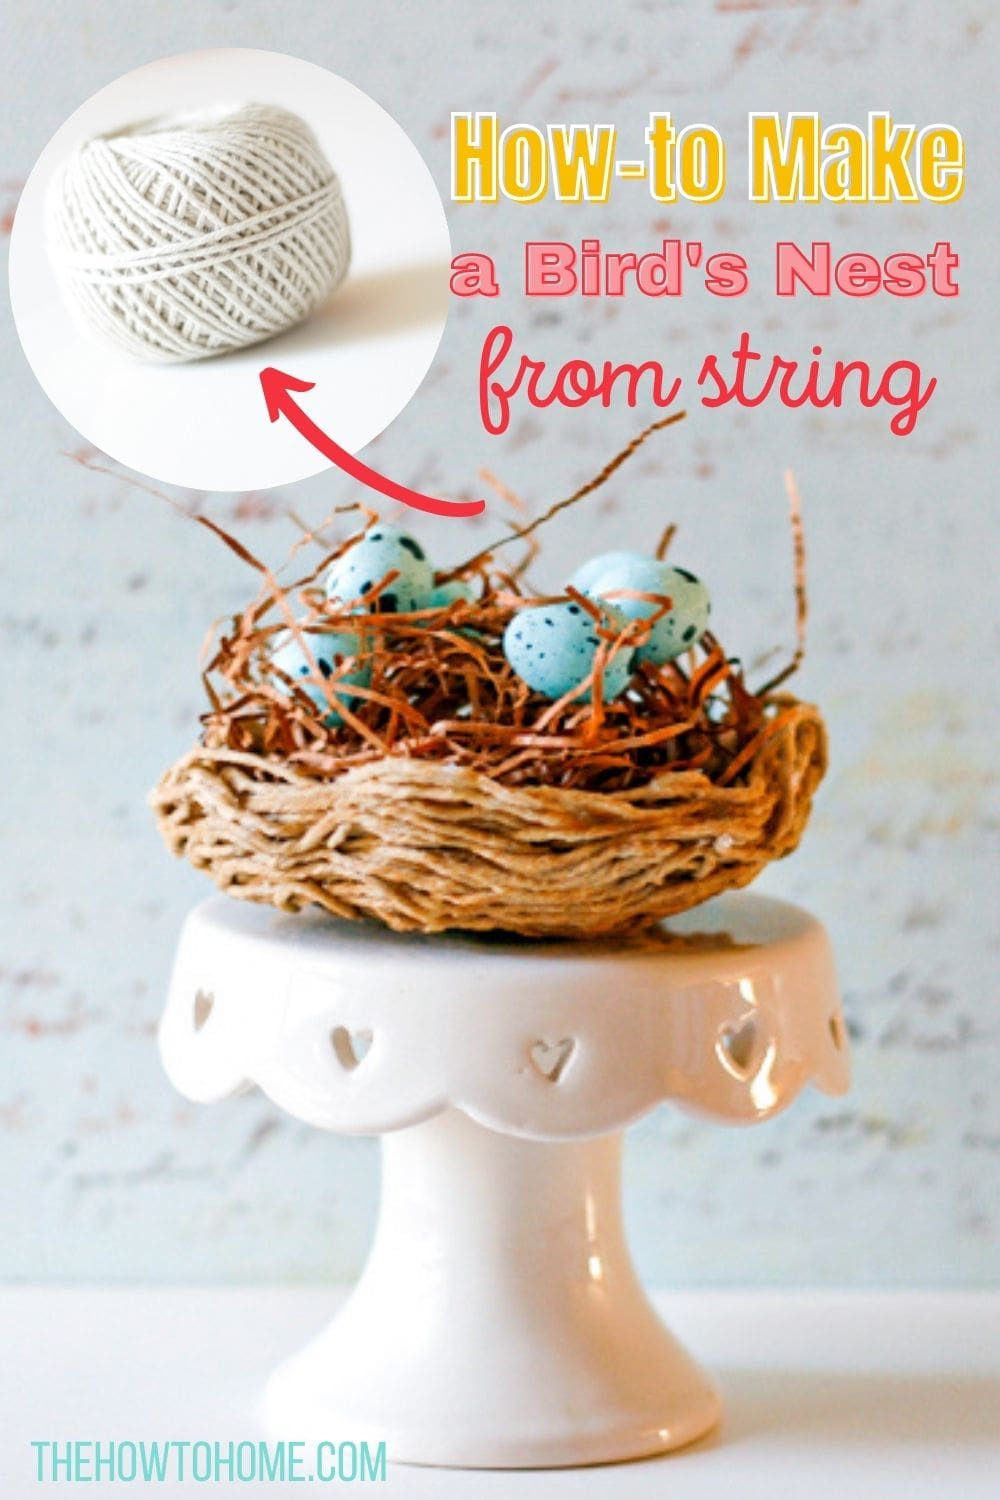 ball of white string above a bird's nest made from twine on a cupcake pedestal